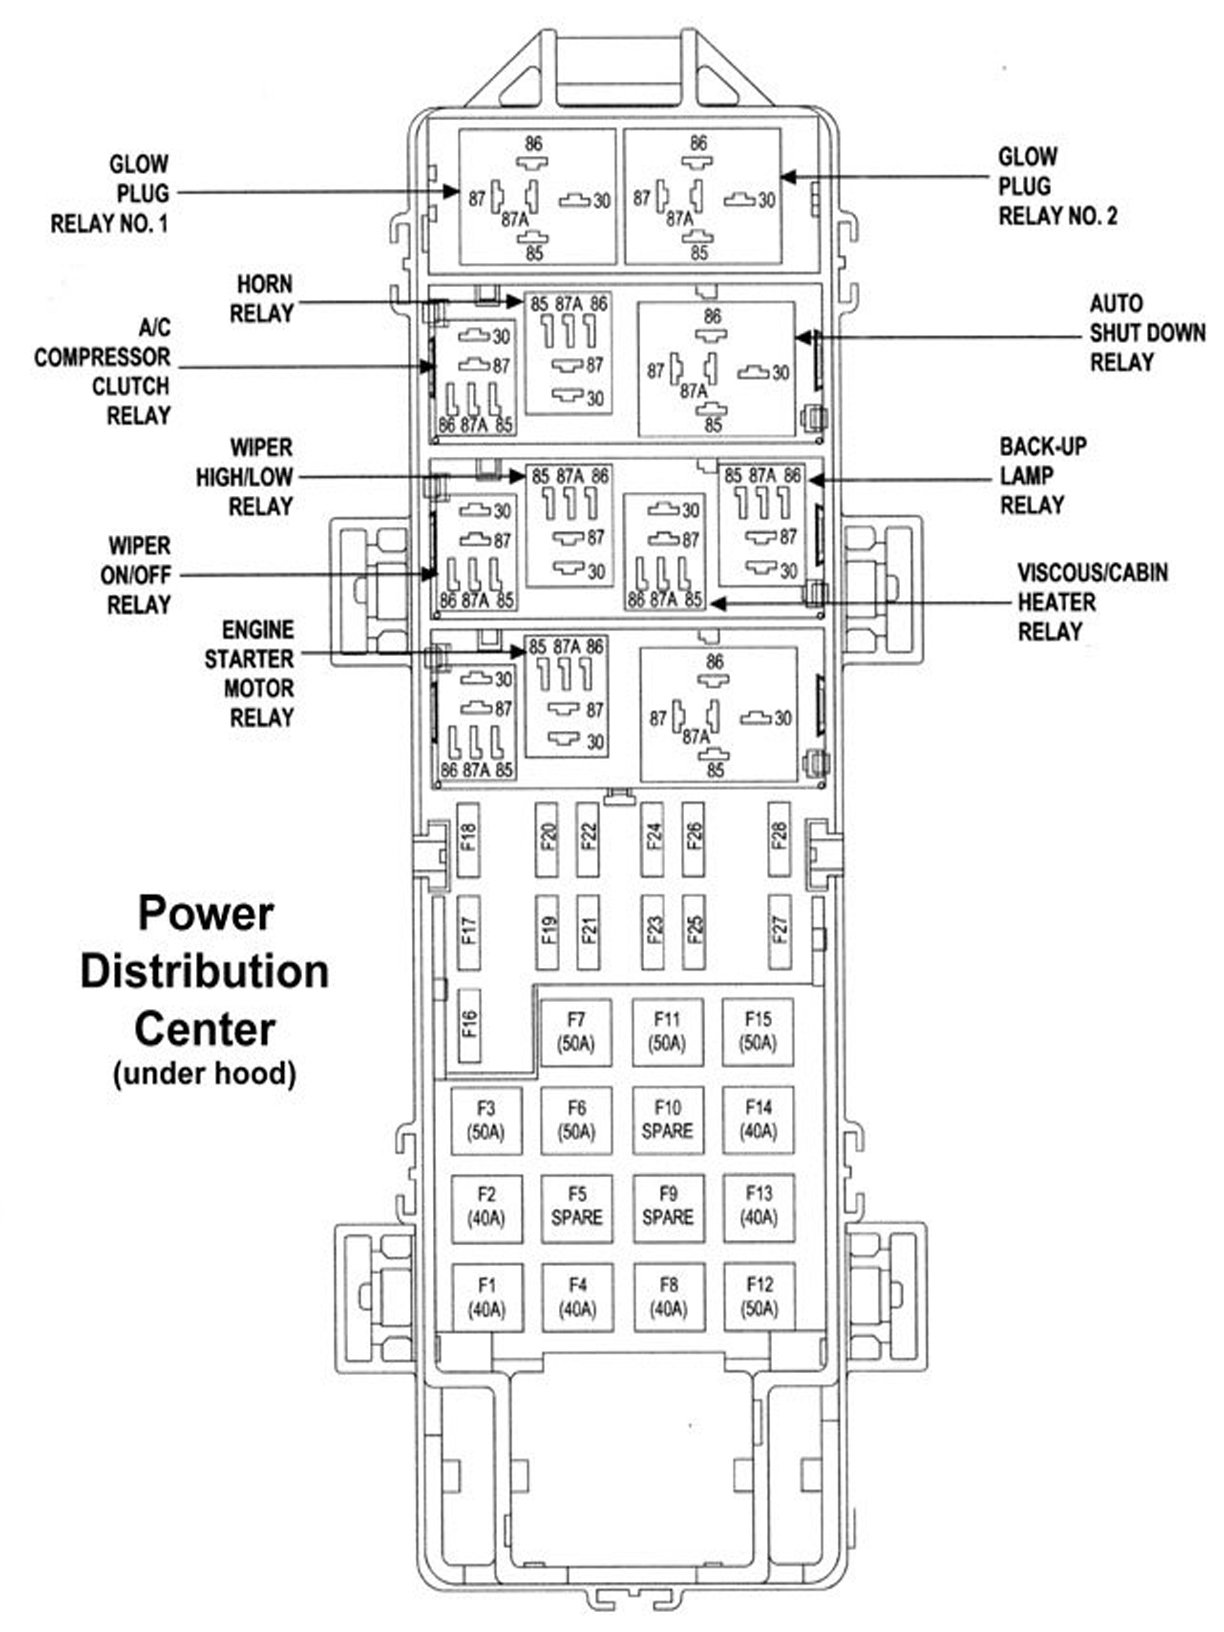 AAAAAAAAug 28 Fuse Box 04 91415 jeep grand cherokee wj 1999 to 2004 fuse box diagram cherokeeforum  at bayanpartner.co